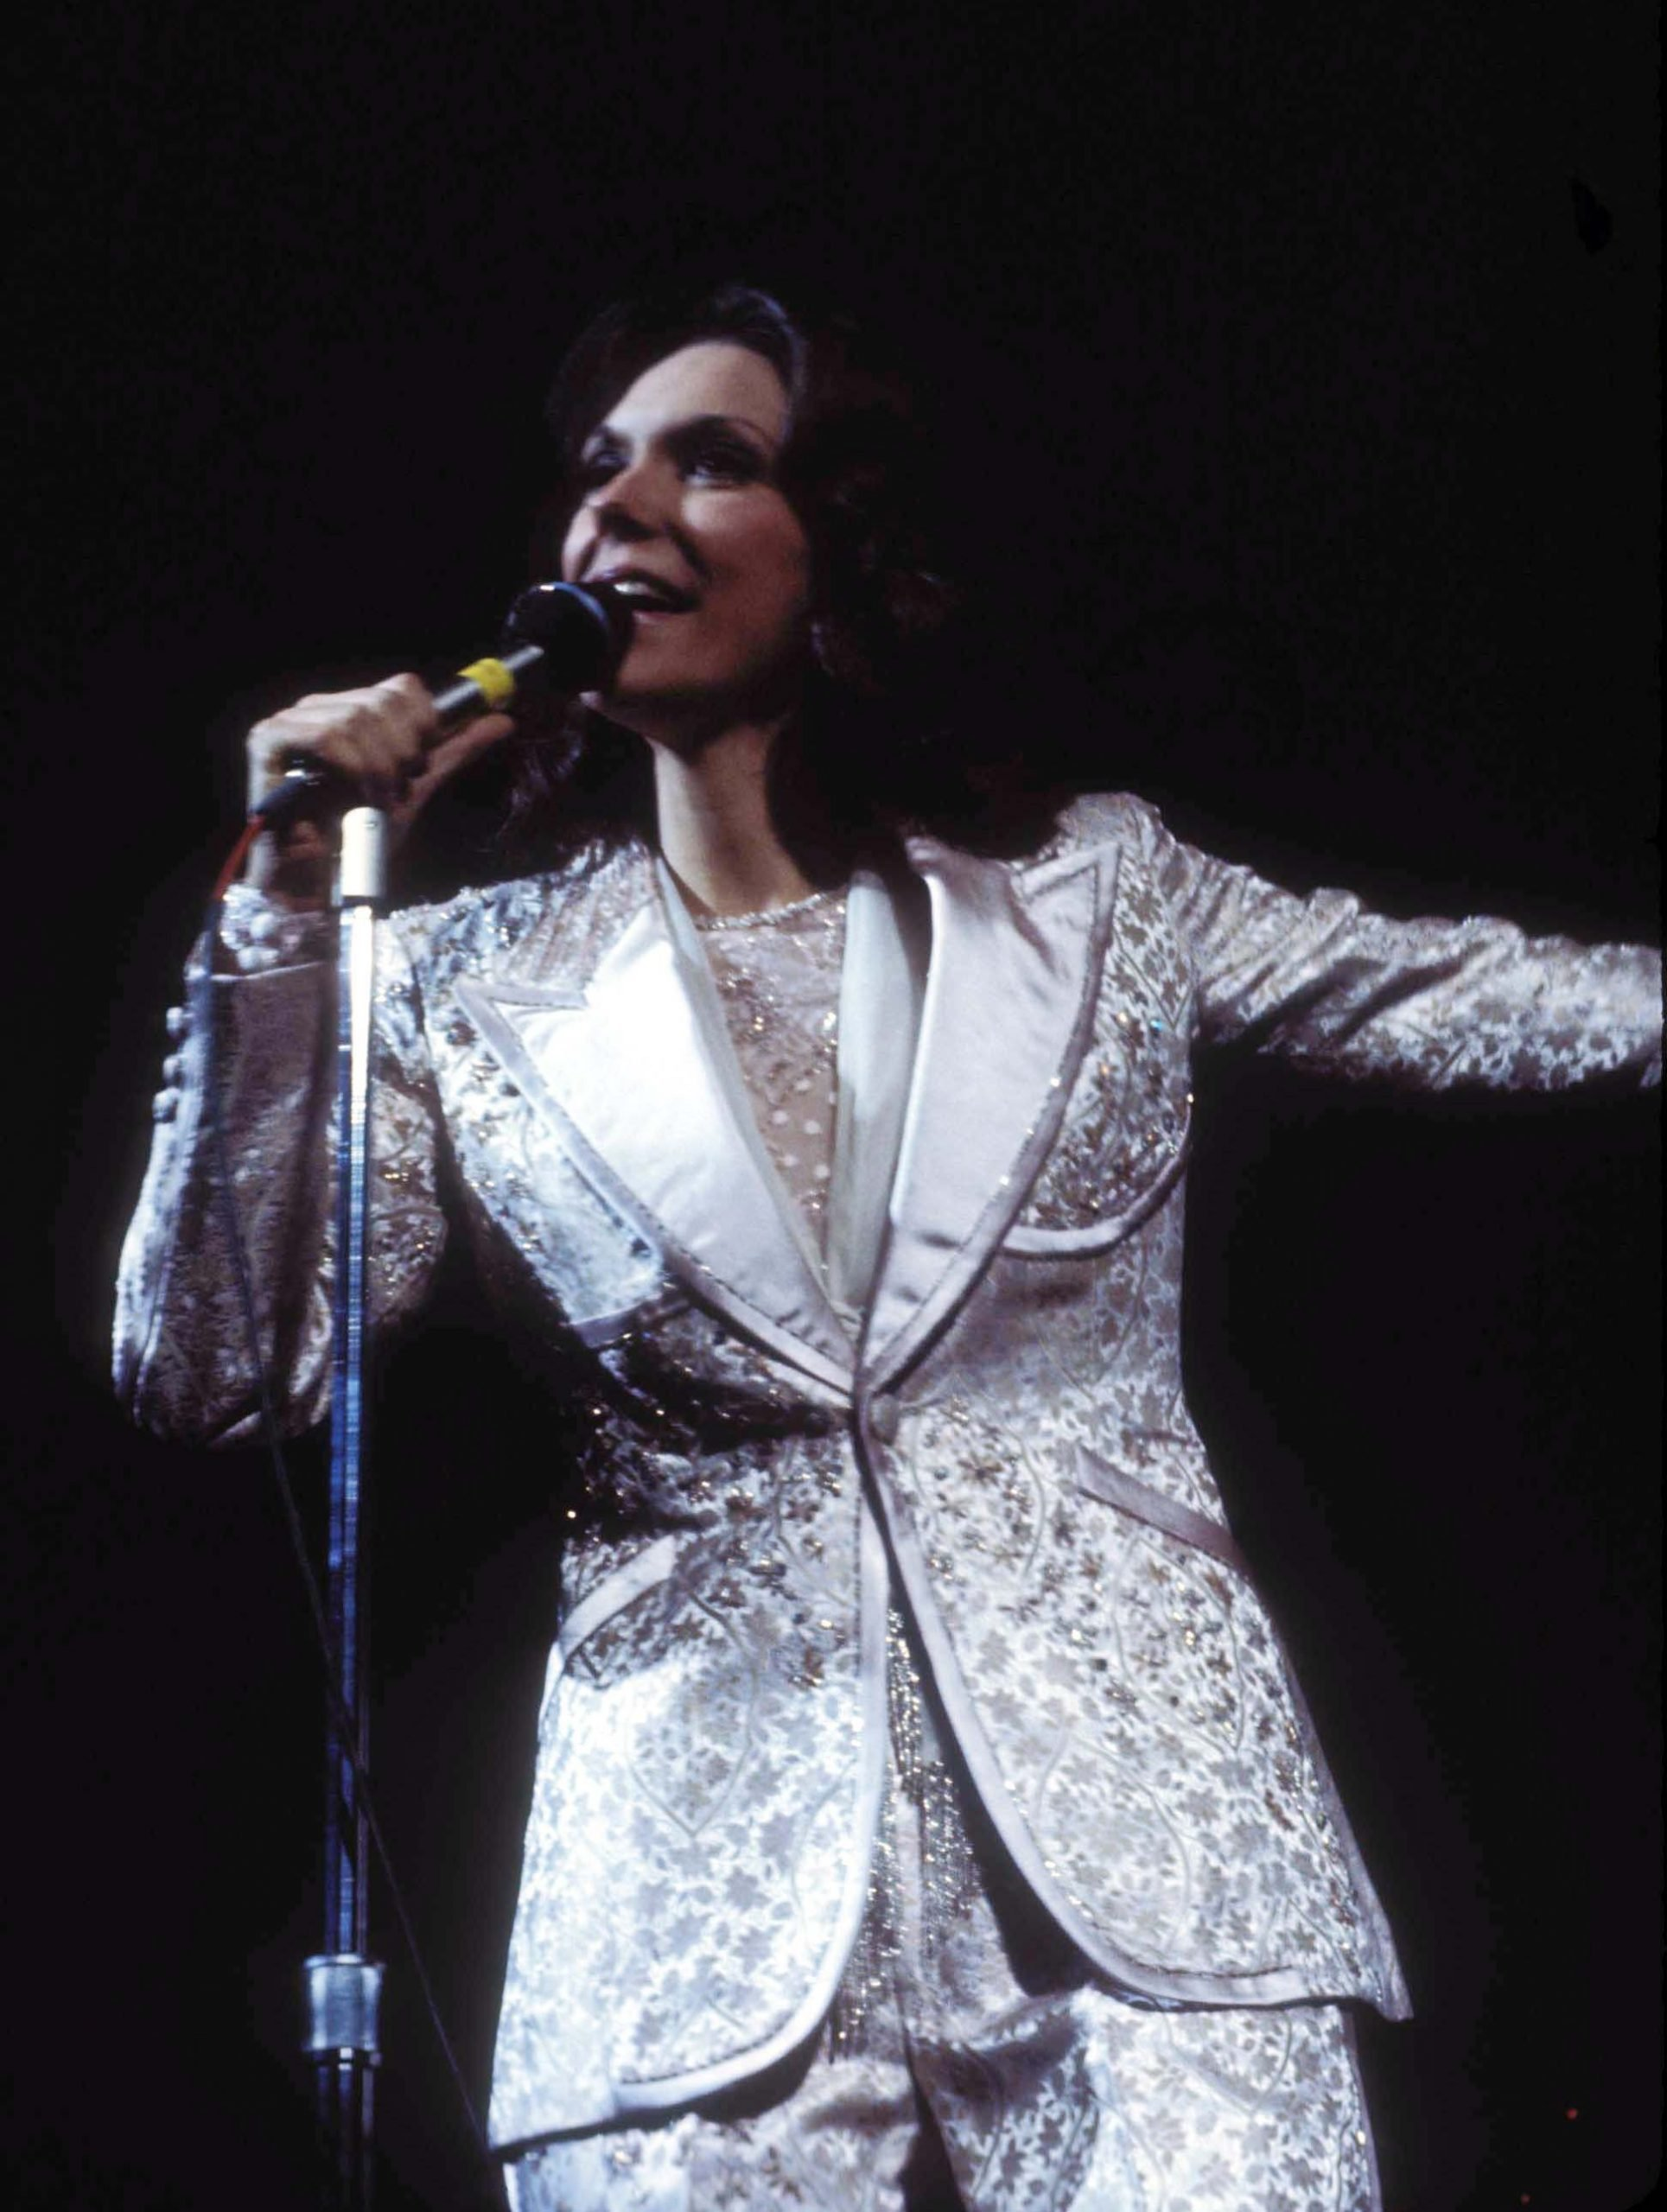 """Herb Alpert Played A Role In Helping Produce The Carpenters' '70s Hit """"Close To You"""""""